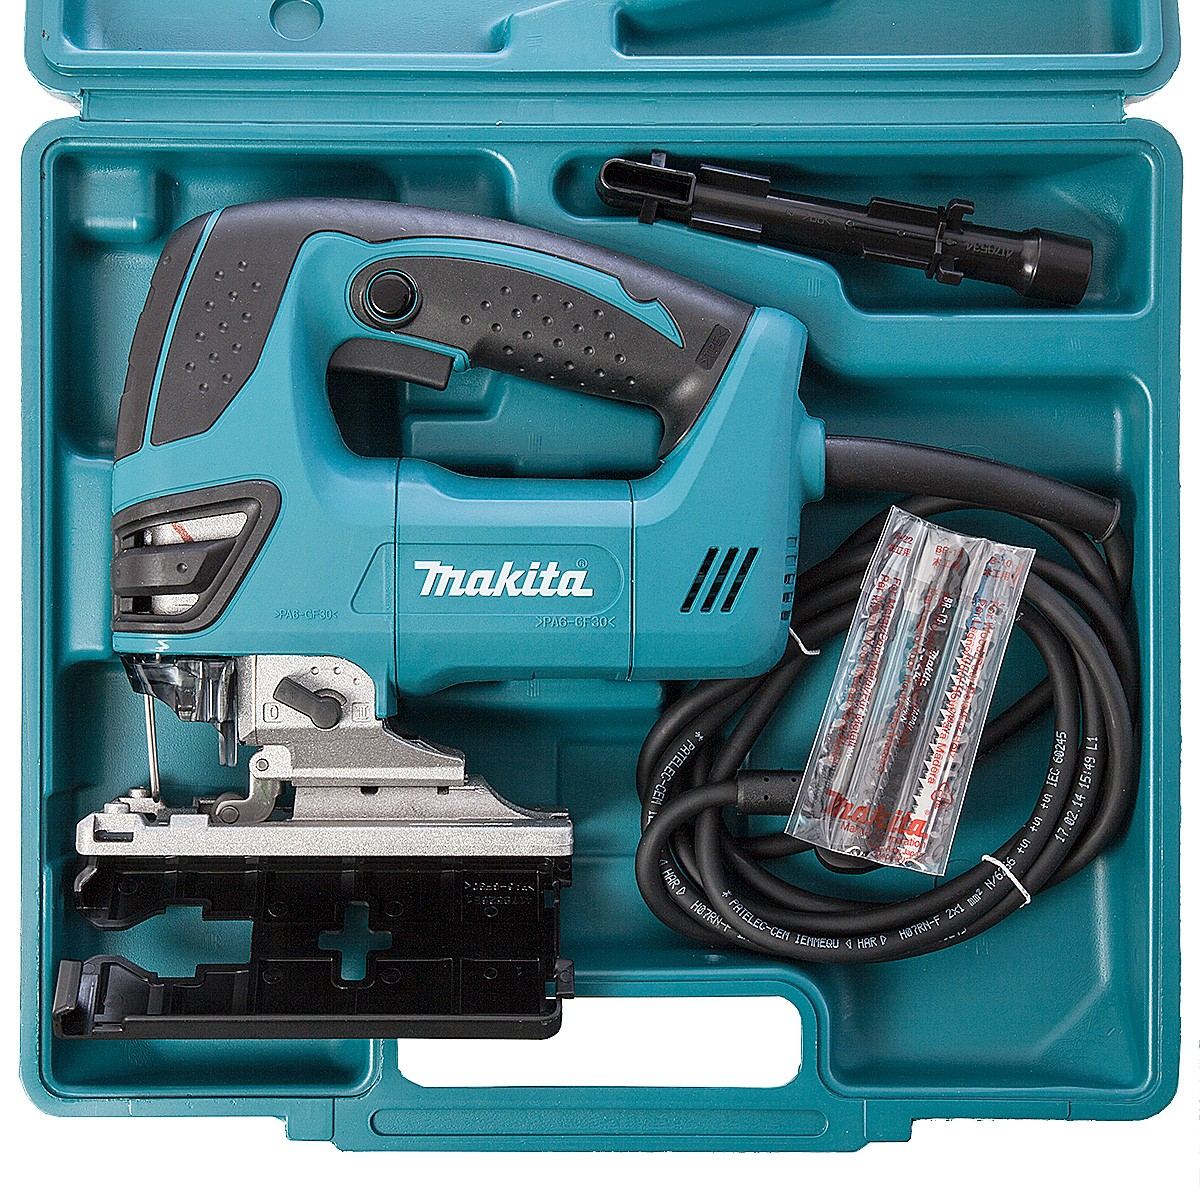 Makita 4350fct Orbital Action Top Handle Jigsaw In Carry